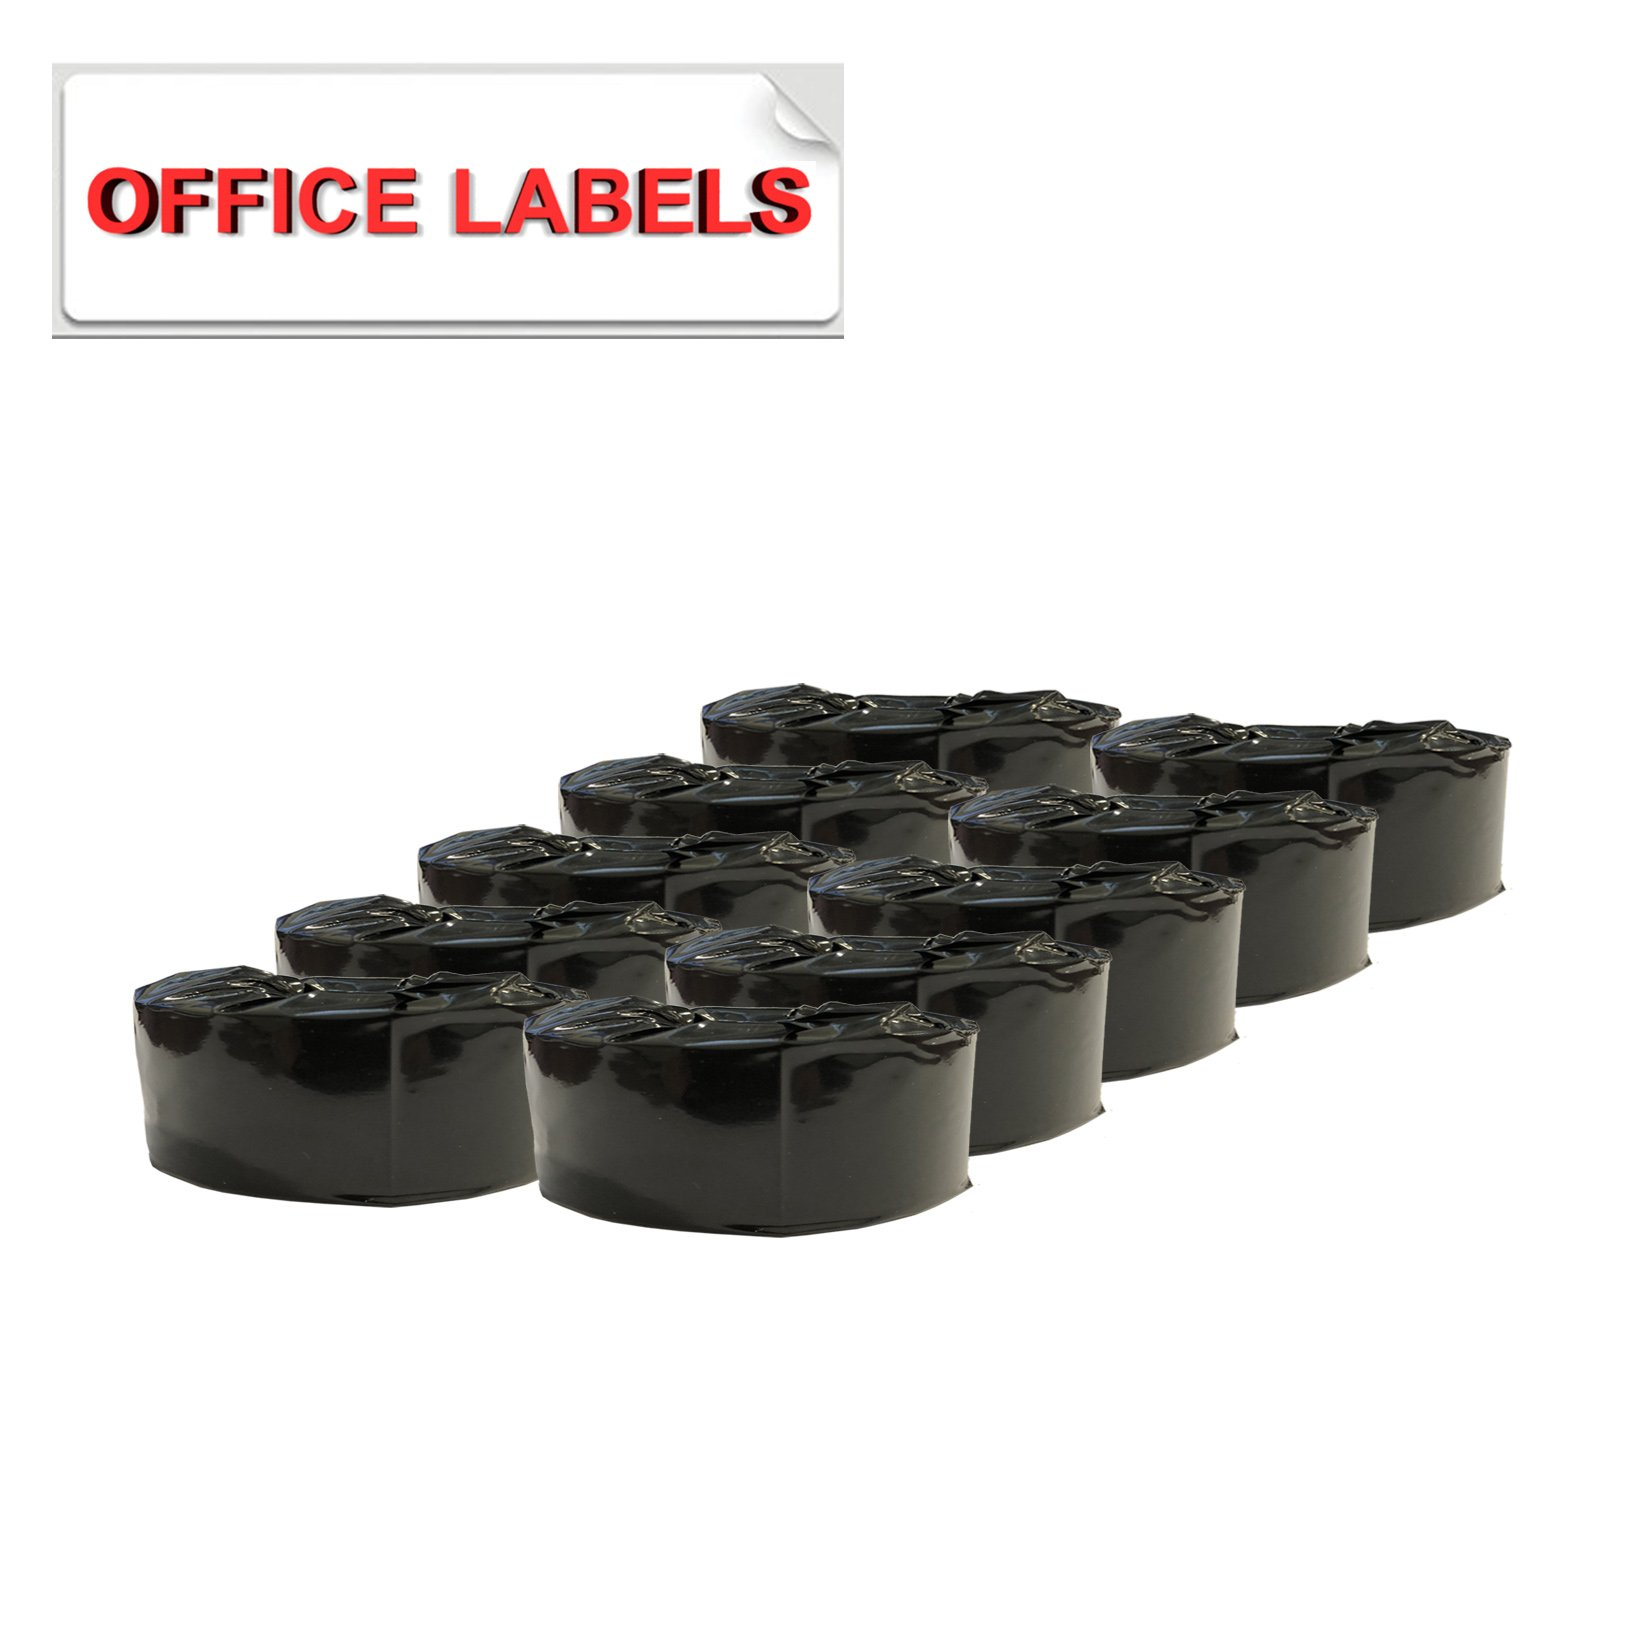 "10 Rolls of DK-1201 Compatible Address Labels for BROTHER 1-1/7"" X 3-1/2"" (29mm x 90.3mm) Without Holder - image 2 de 3"